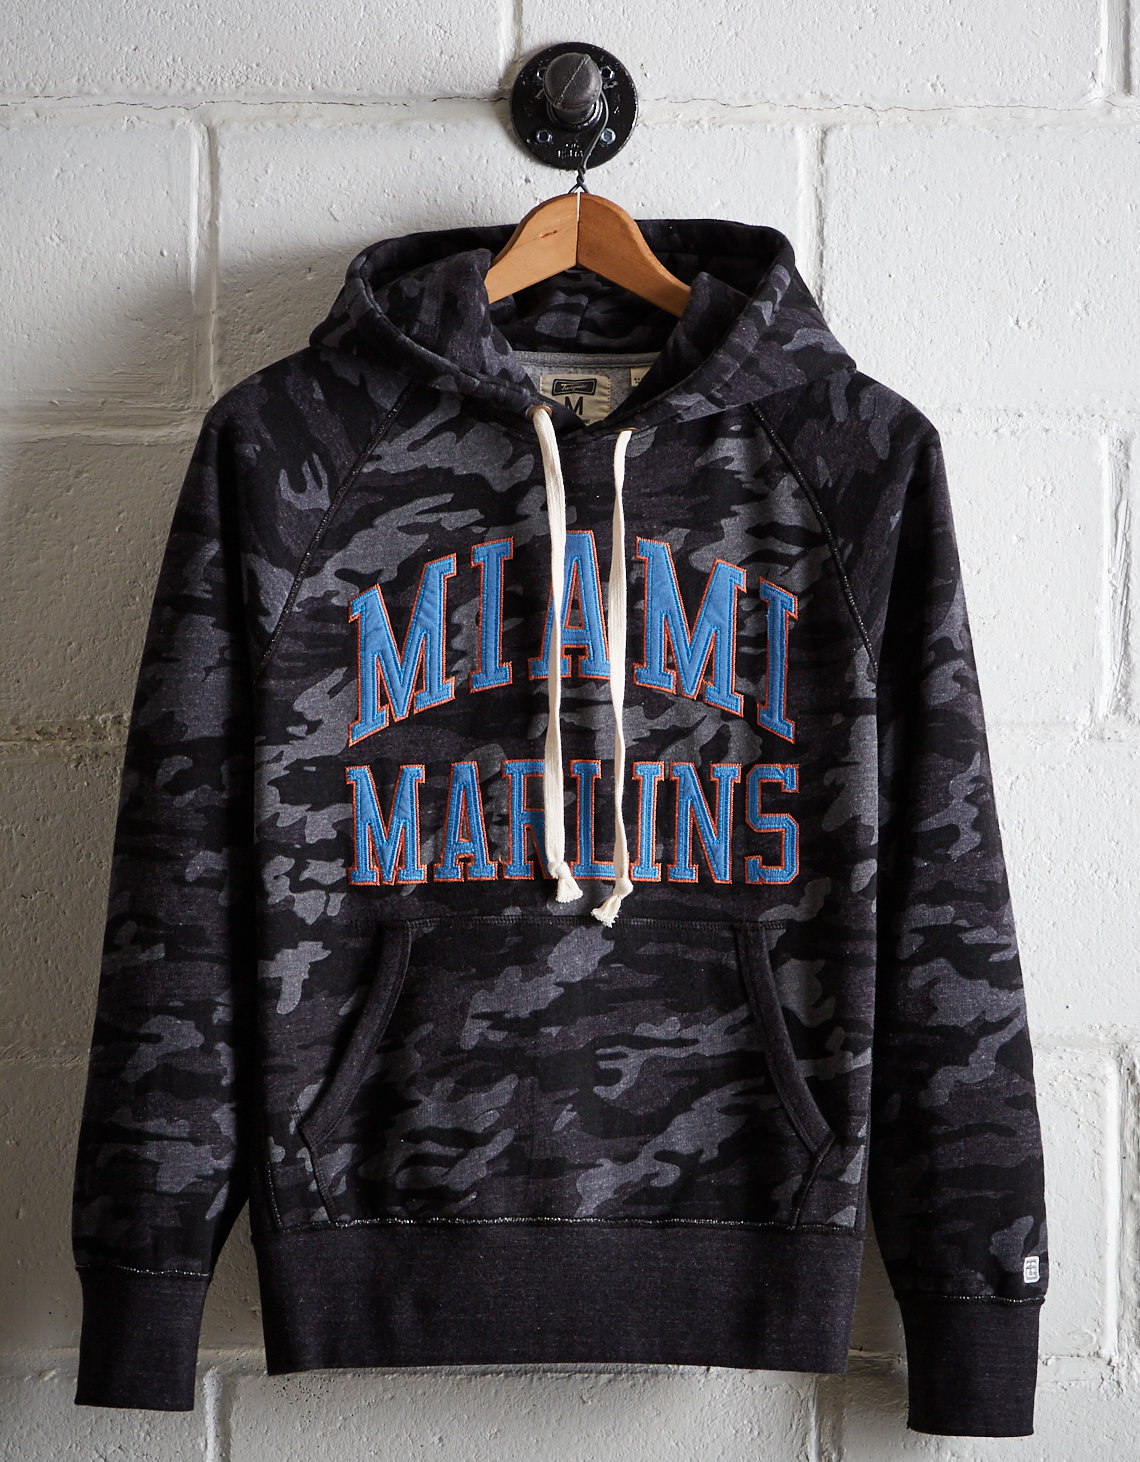 reputable site ed428 7cfd5 Tailgate Men's Miami Marlins Camo Hoodie